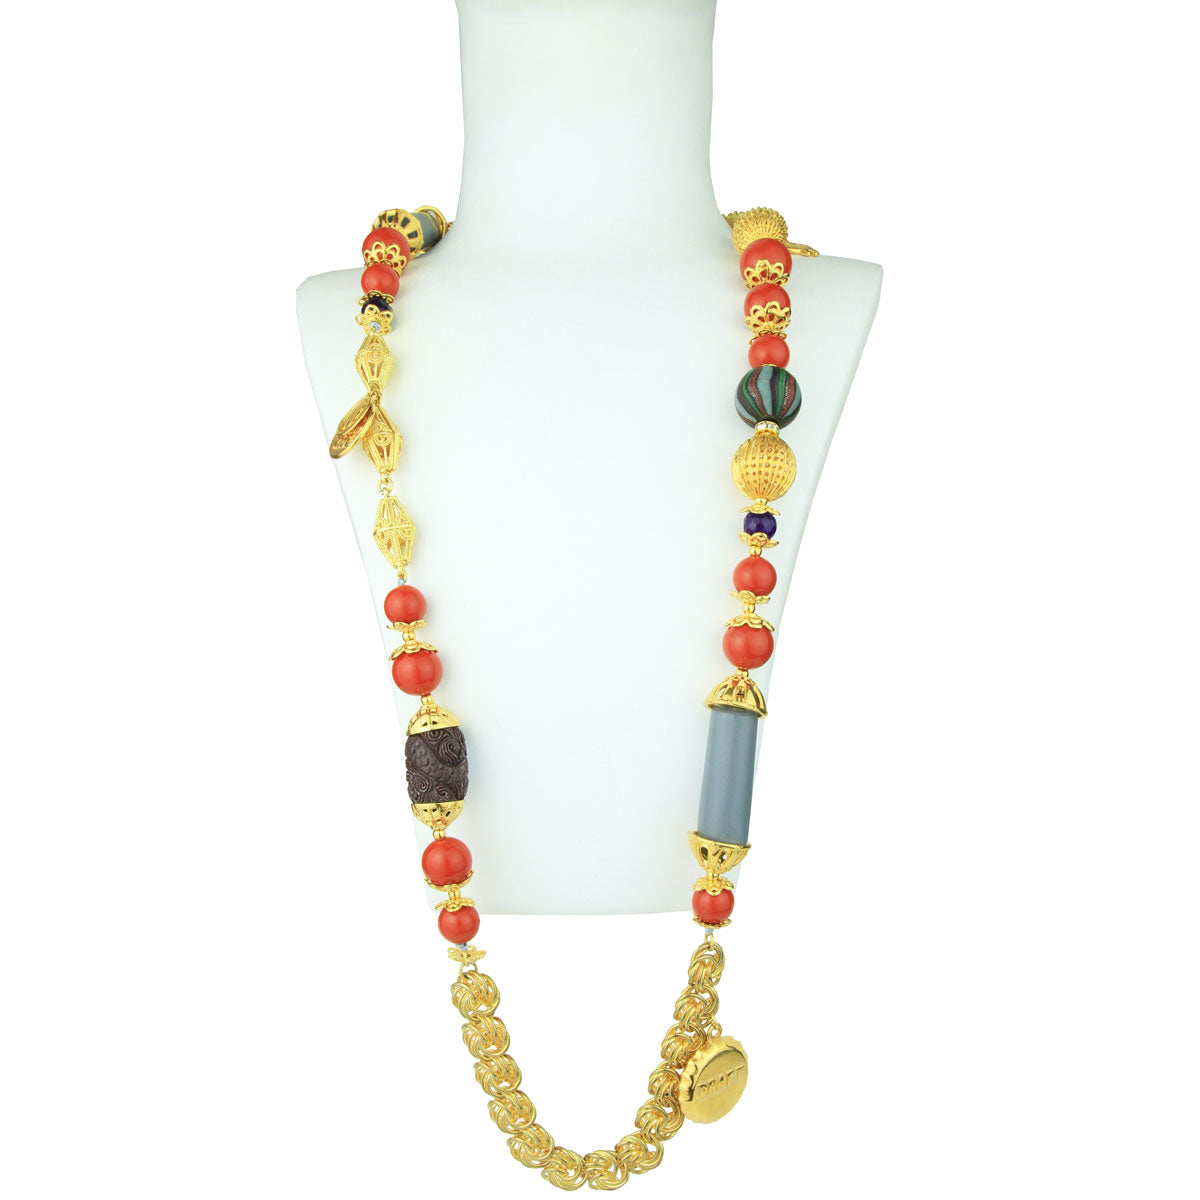 Claudia Gold Plated Long Chain Necklace With Charms and Coral Beads